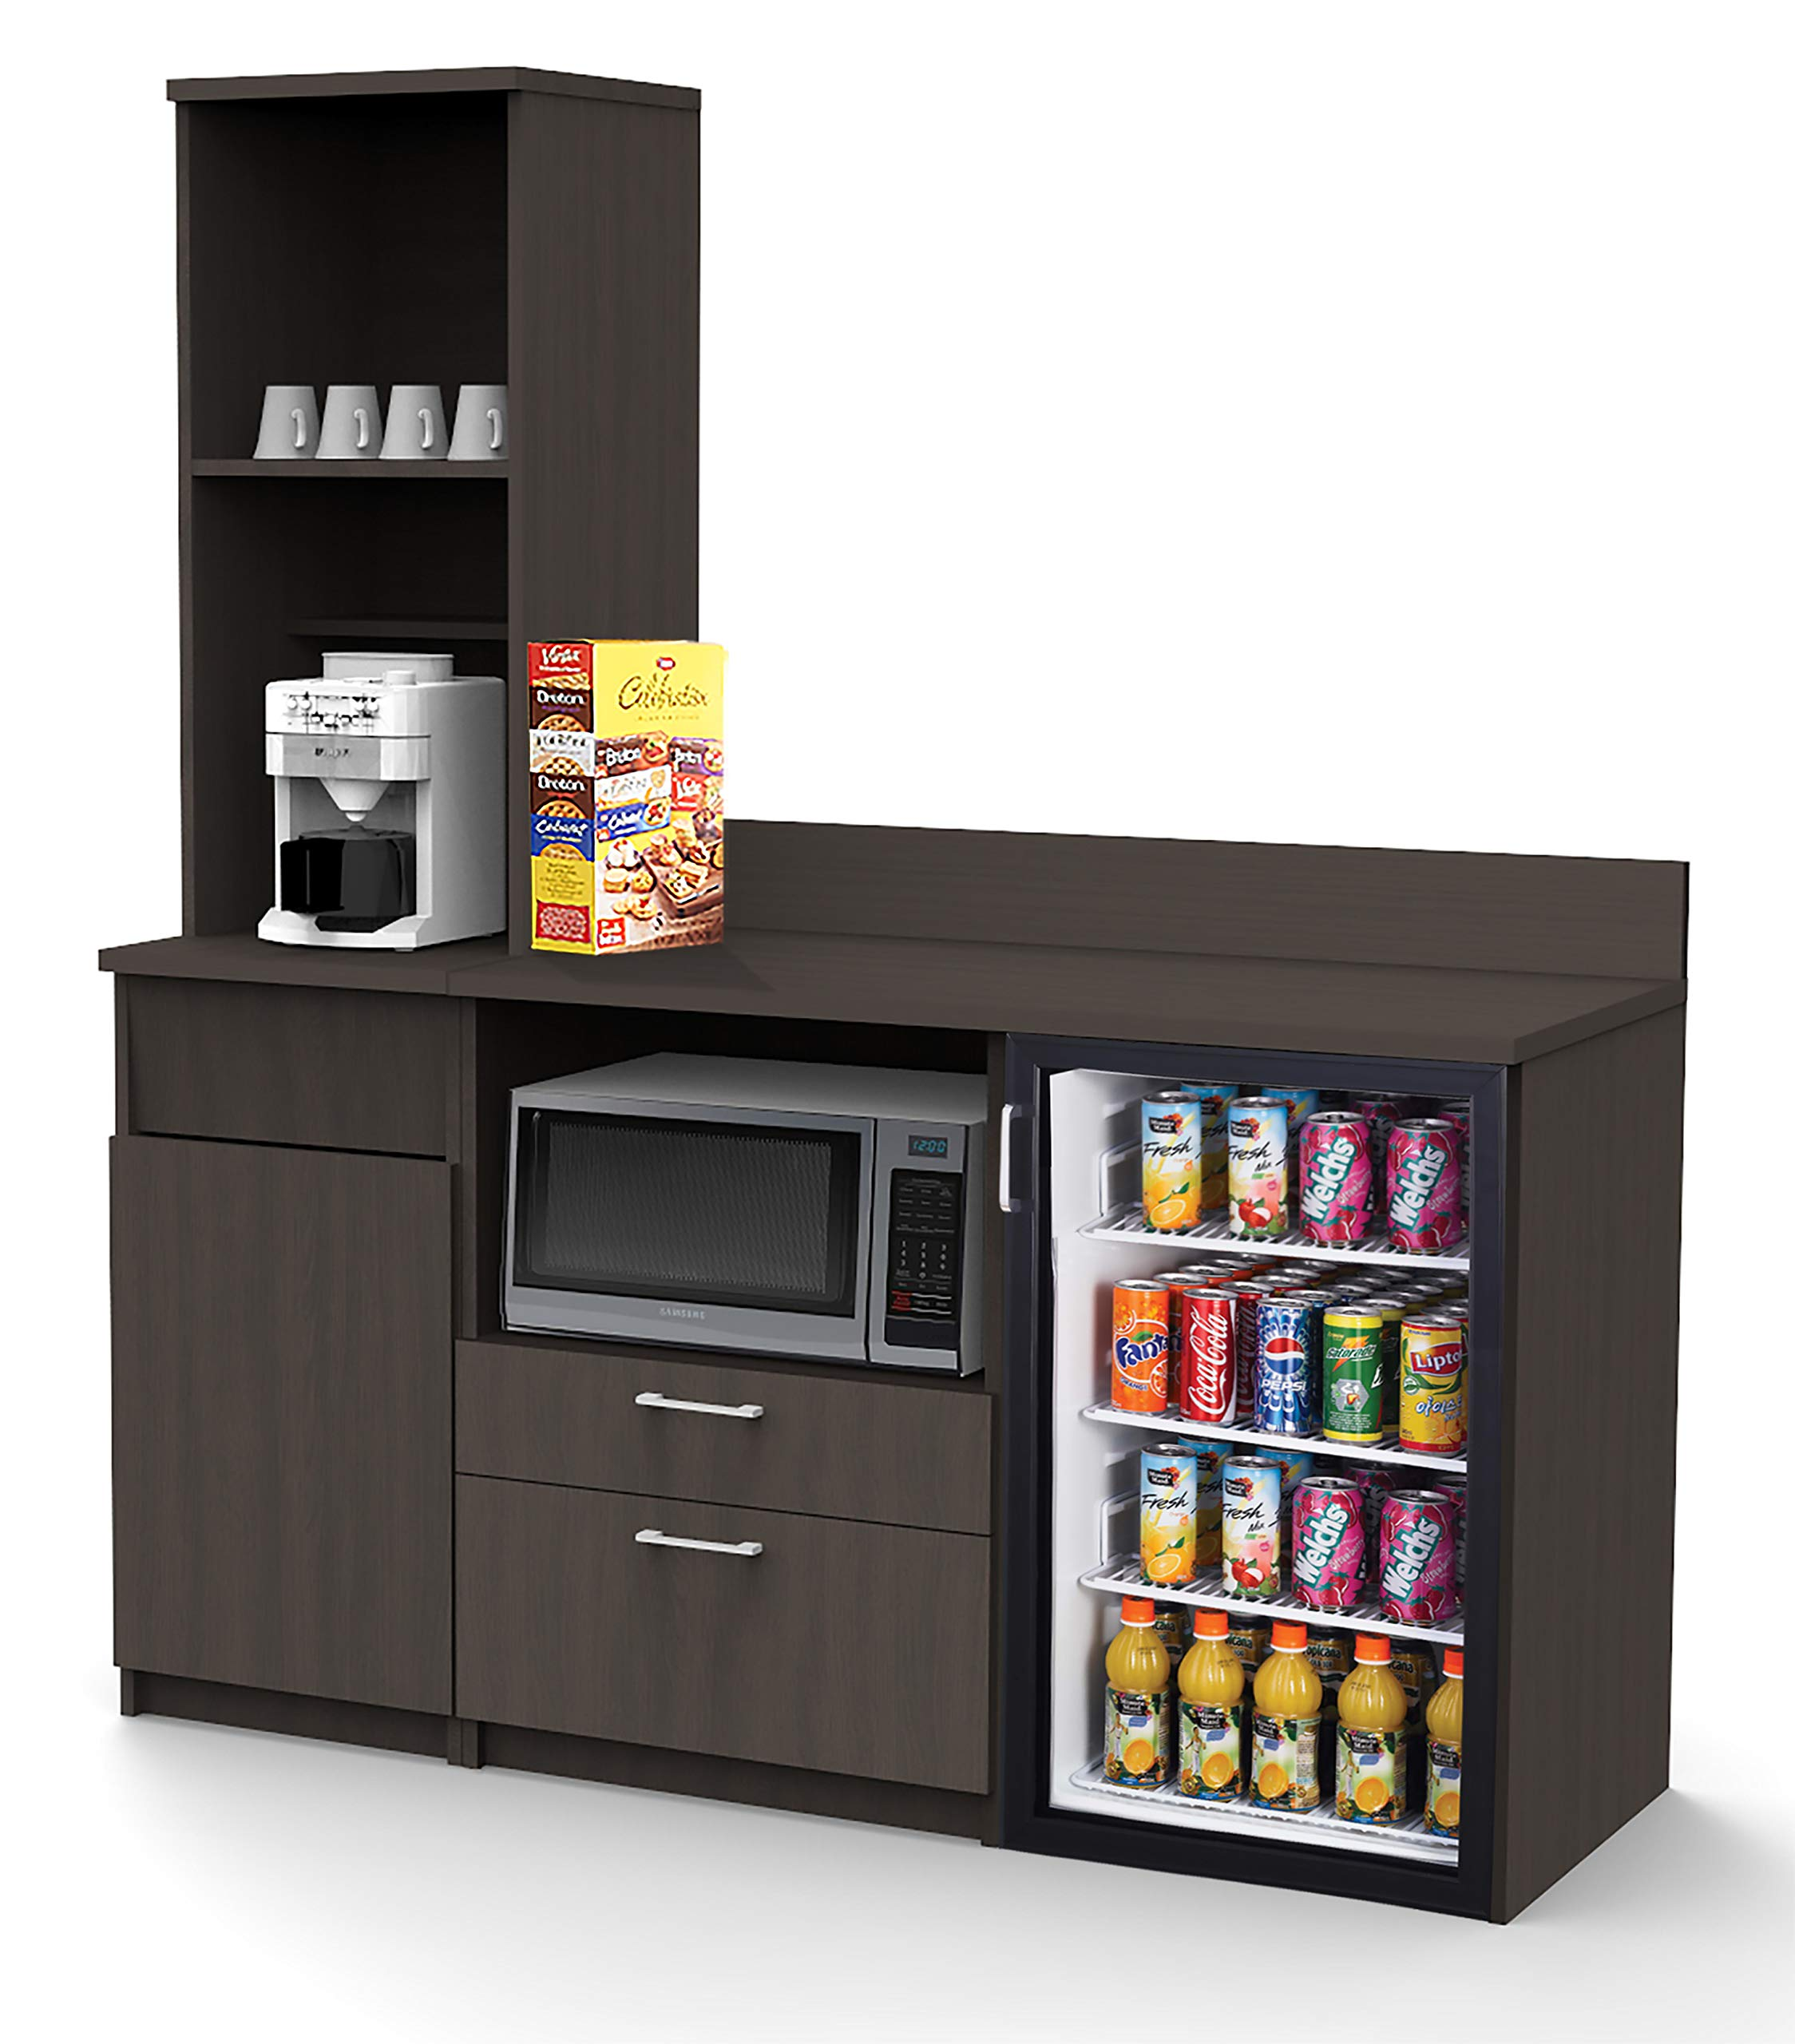 Coffee Kitchen Lunch Break Room Space Saver Cabinets Model 4508 BREAKTIME 3 Piece Group Color Espresso - Factory Assembled (NOT RTA) Furniture Items ONLY. by Breaktime